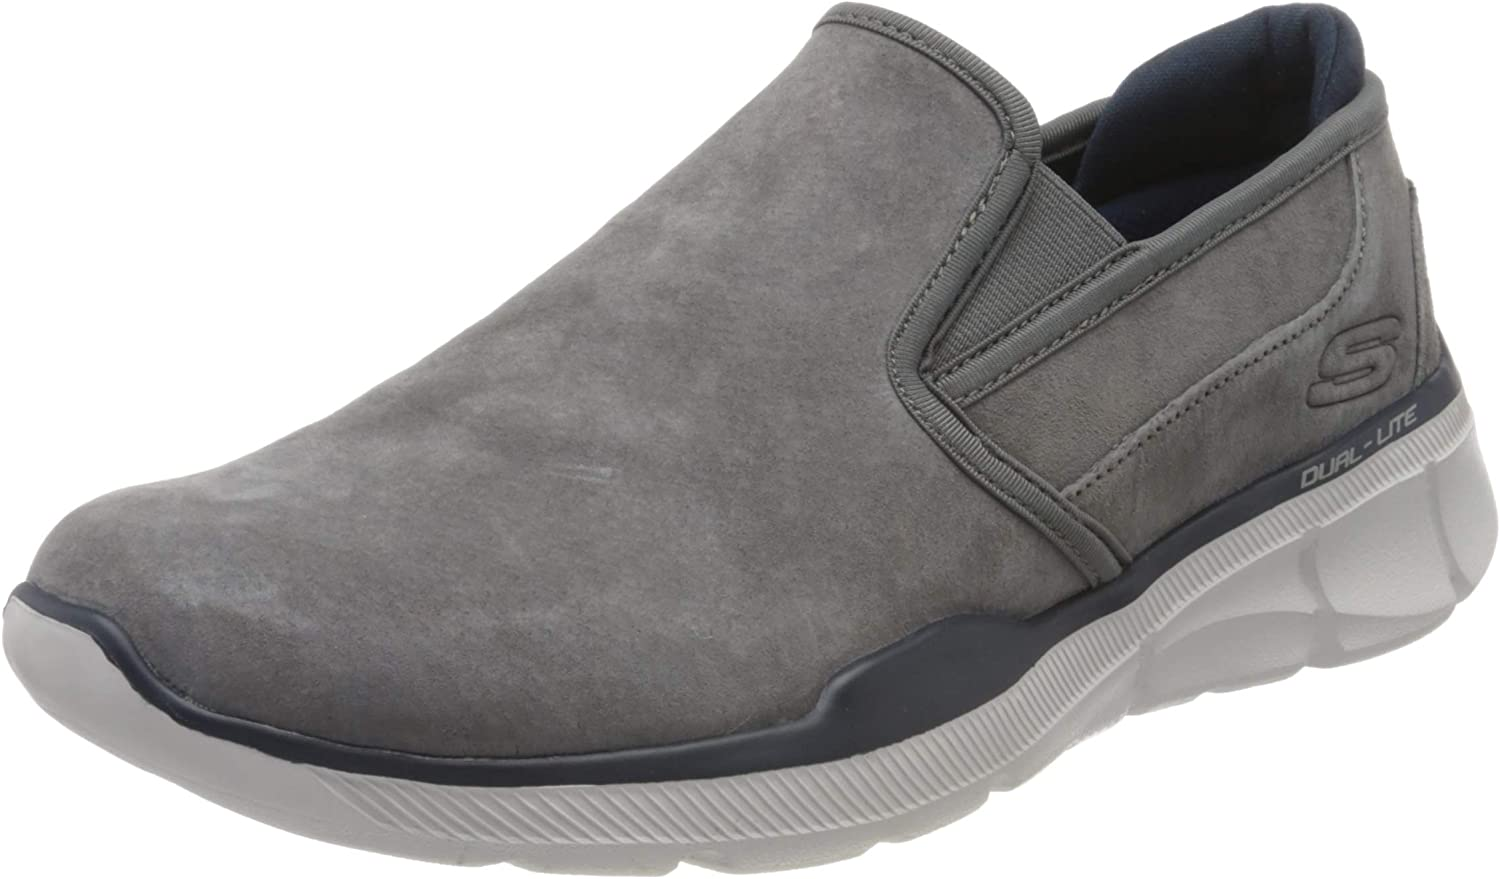 Equalizer 3.0- Substic Slip On Trainers